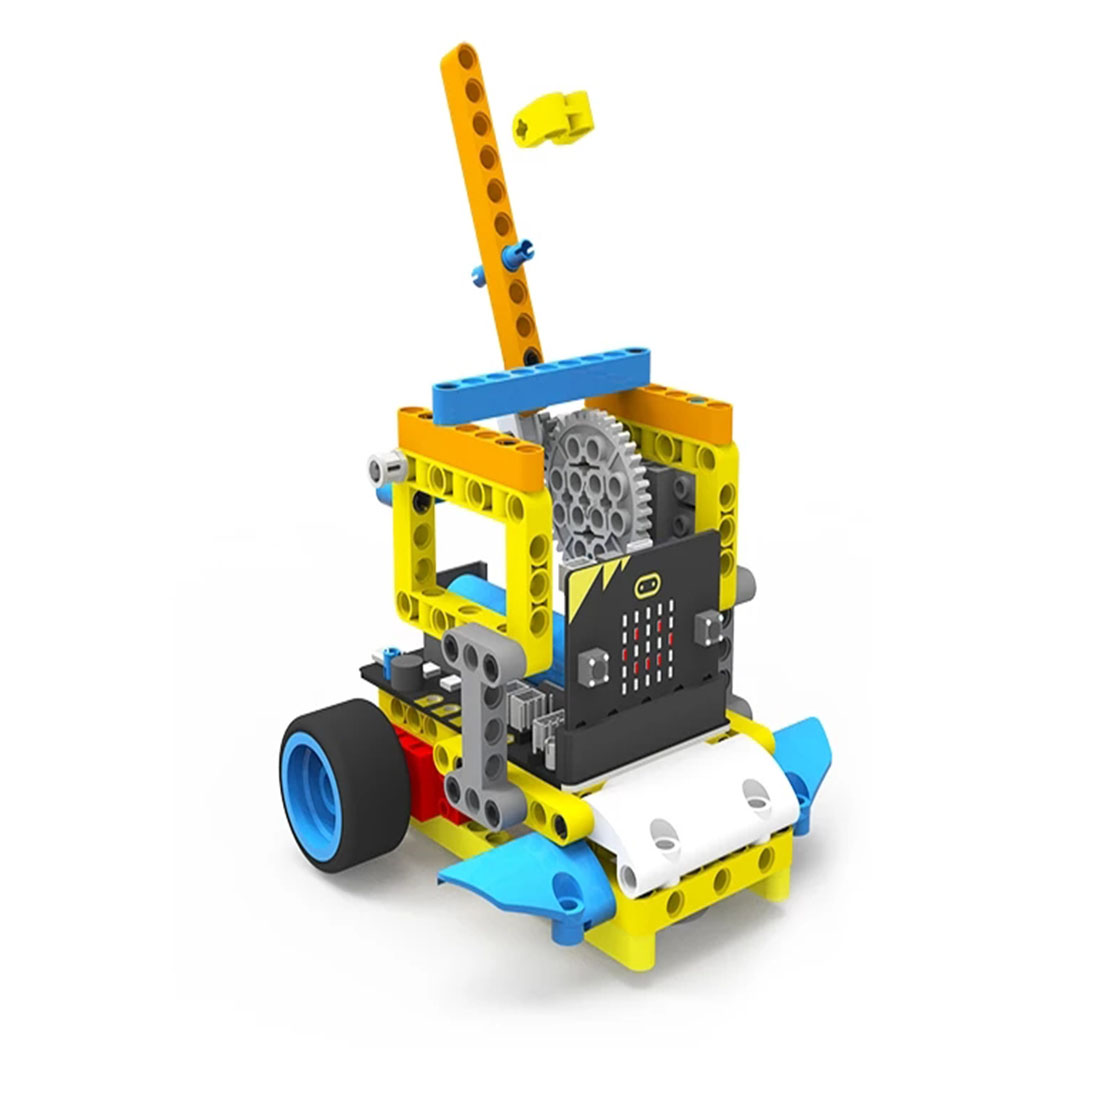 Programmable Intelligent Robot Building Block Car Kit Various Shapes Steam Education Car for Micro:bit(Include Micro:bit Board) 1